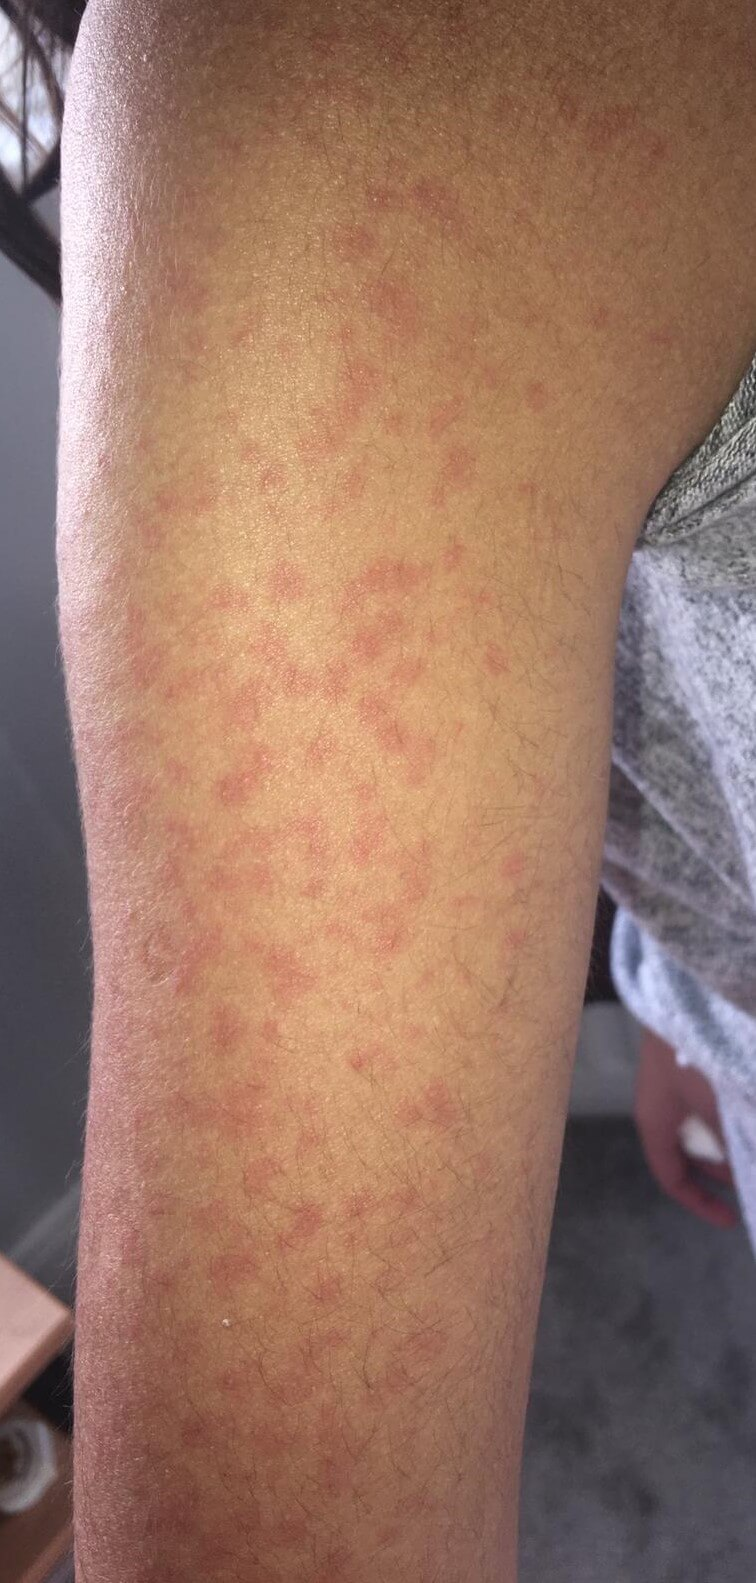 Skin Rash Should Be Considered As A Fourth Key Sign Of Covid 19